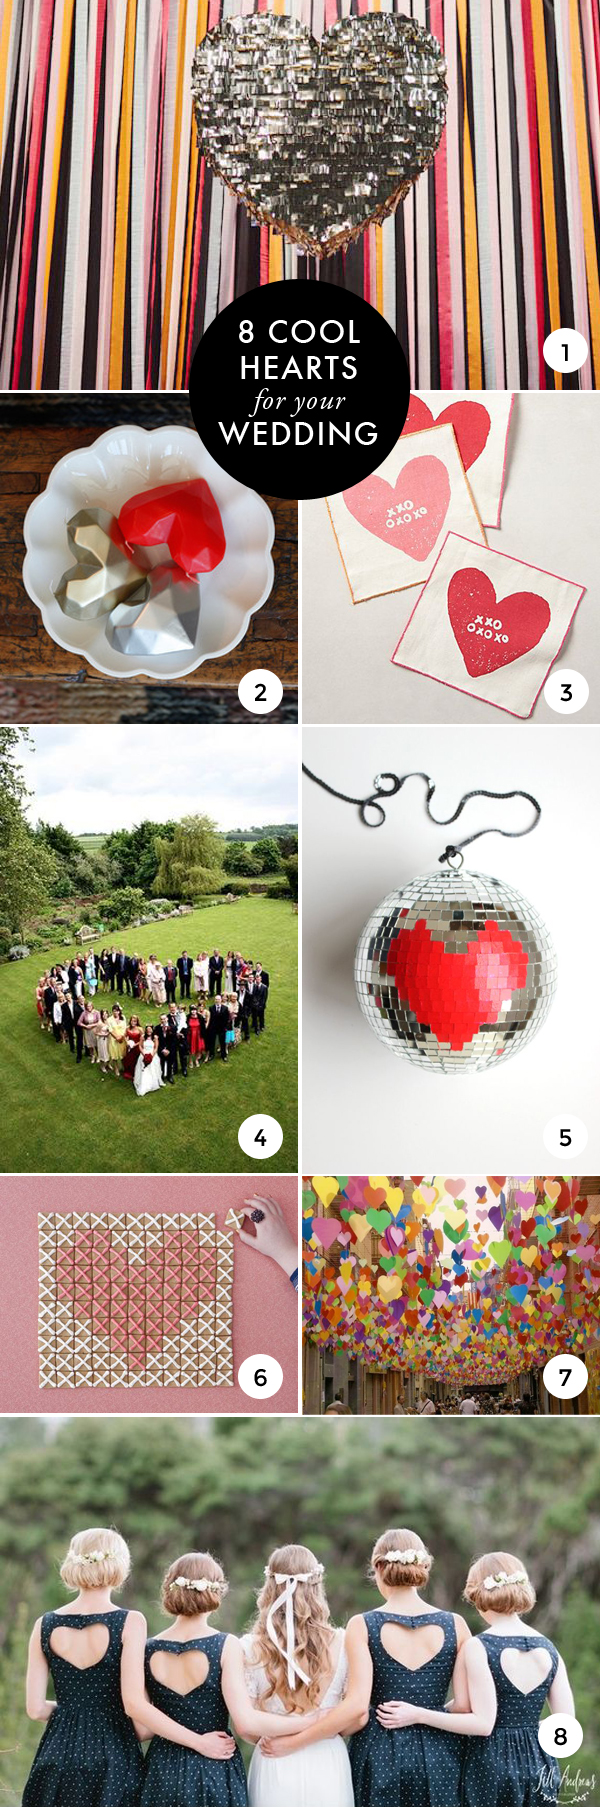 COOL-HEARTS-FOR-YOUR-WEDDING